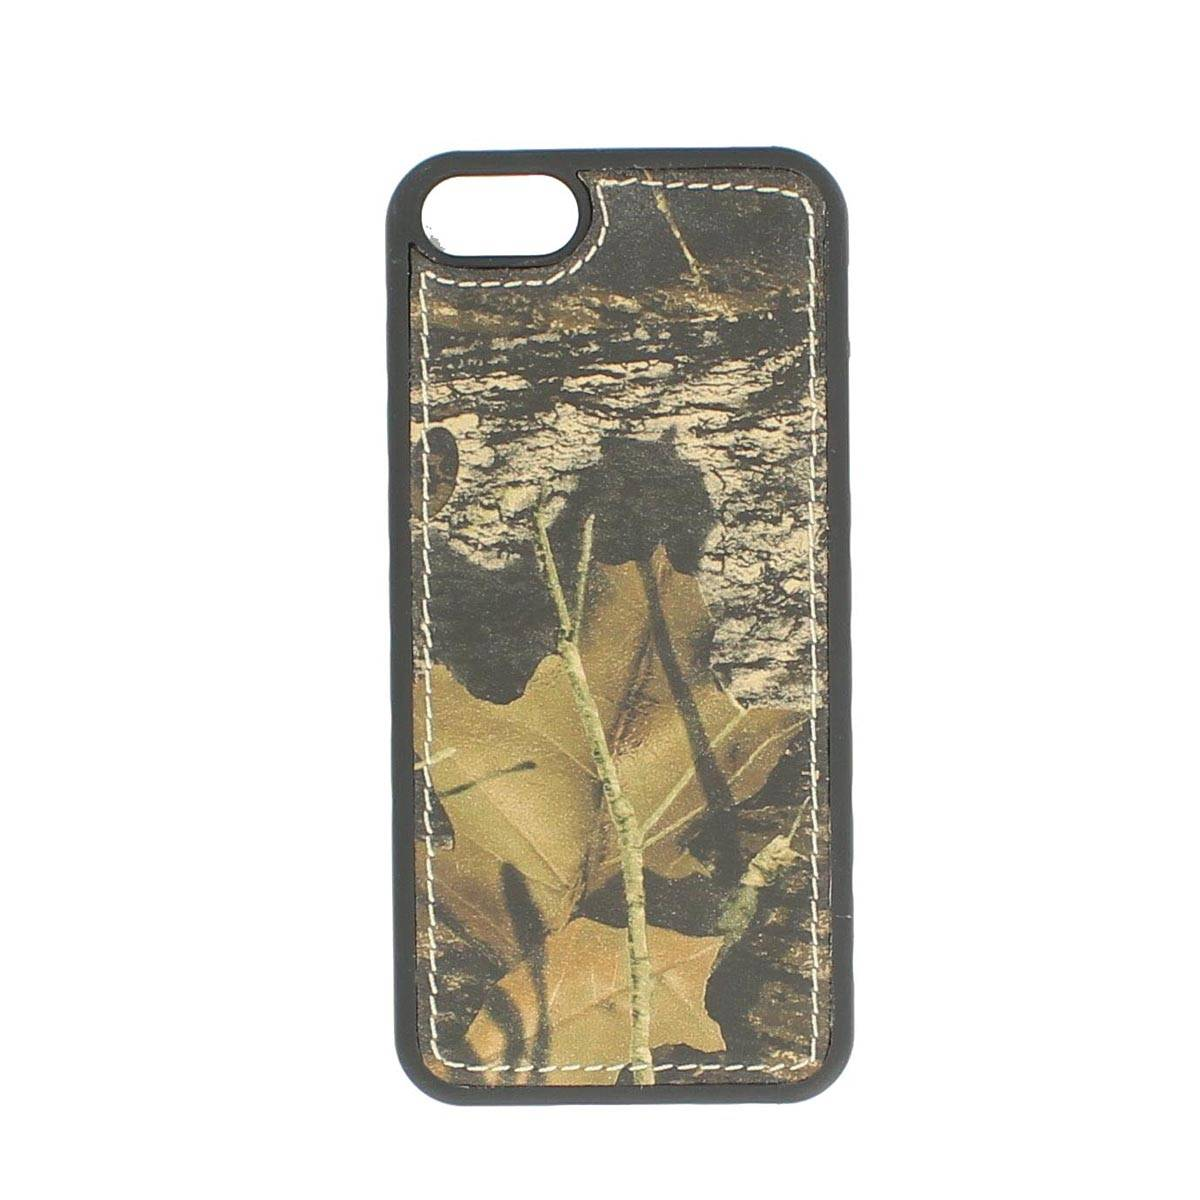 M&F Western Camo Iphone 5 Cover